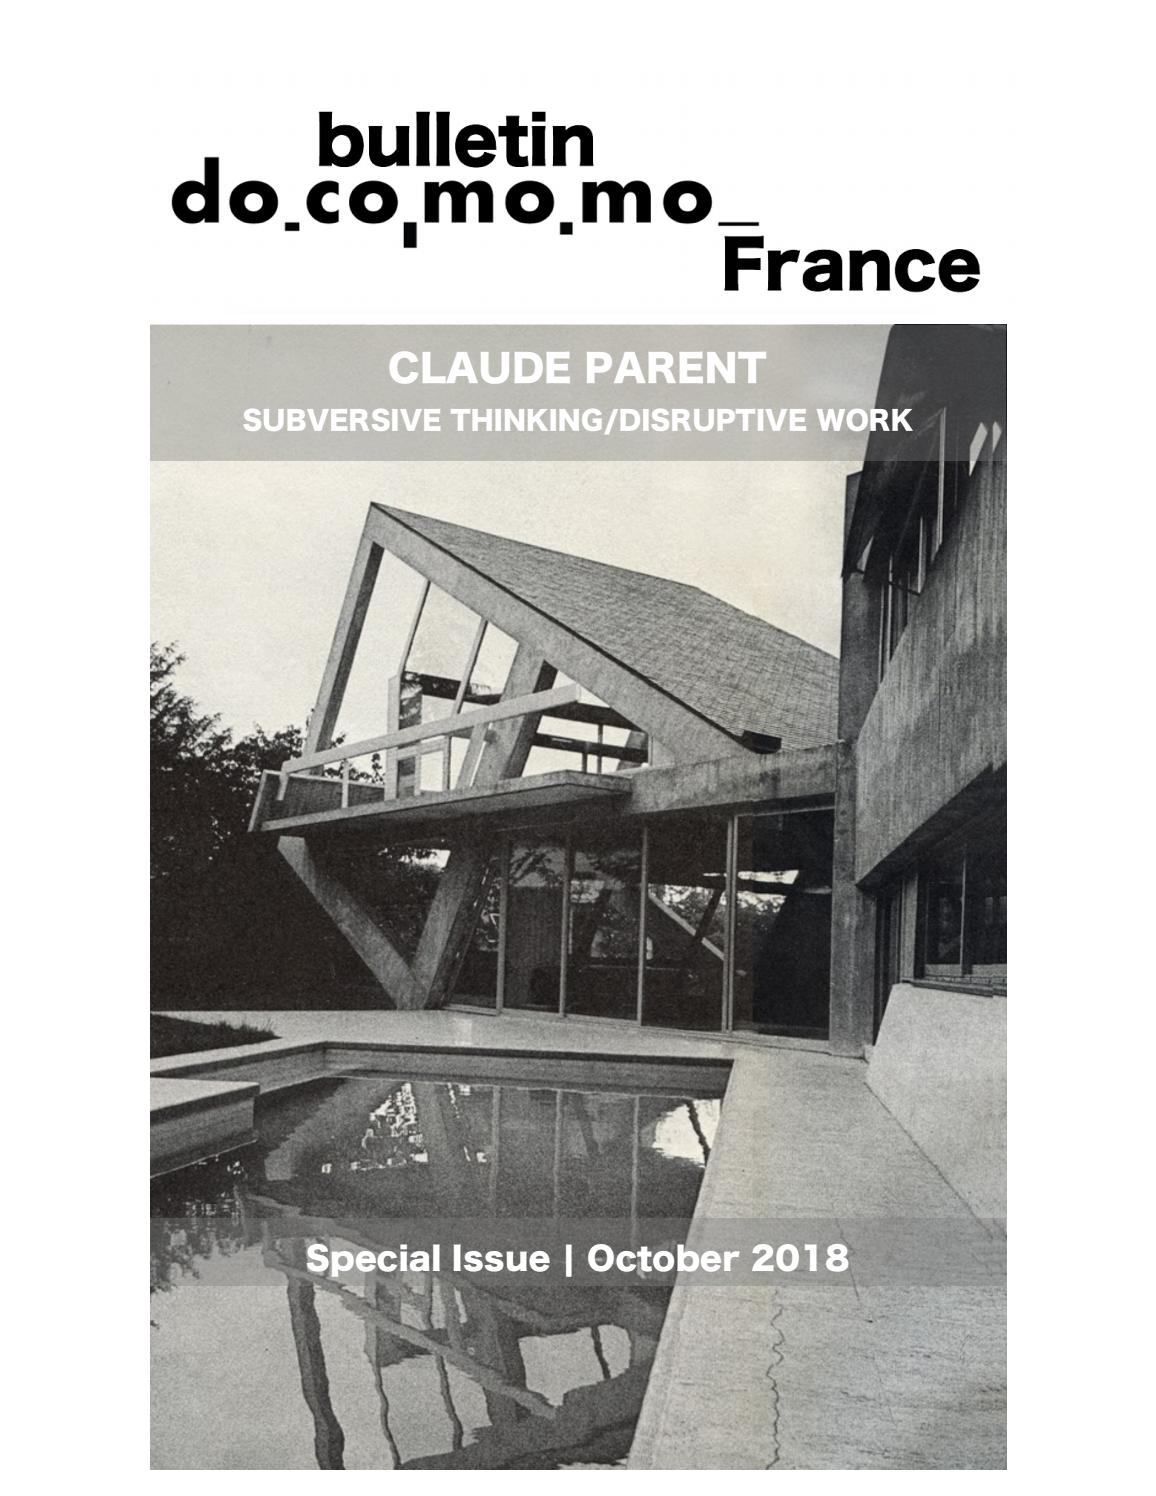 Bulletin Docomomo France Special Issue Claude Parent By